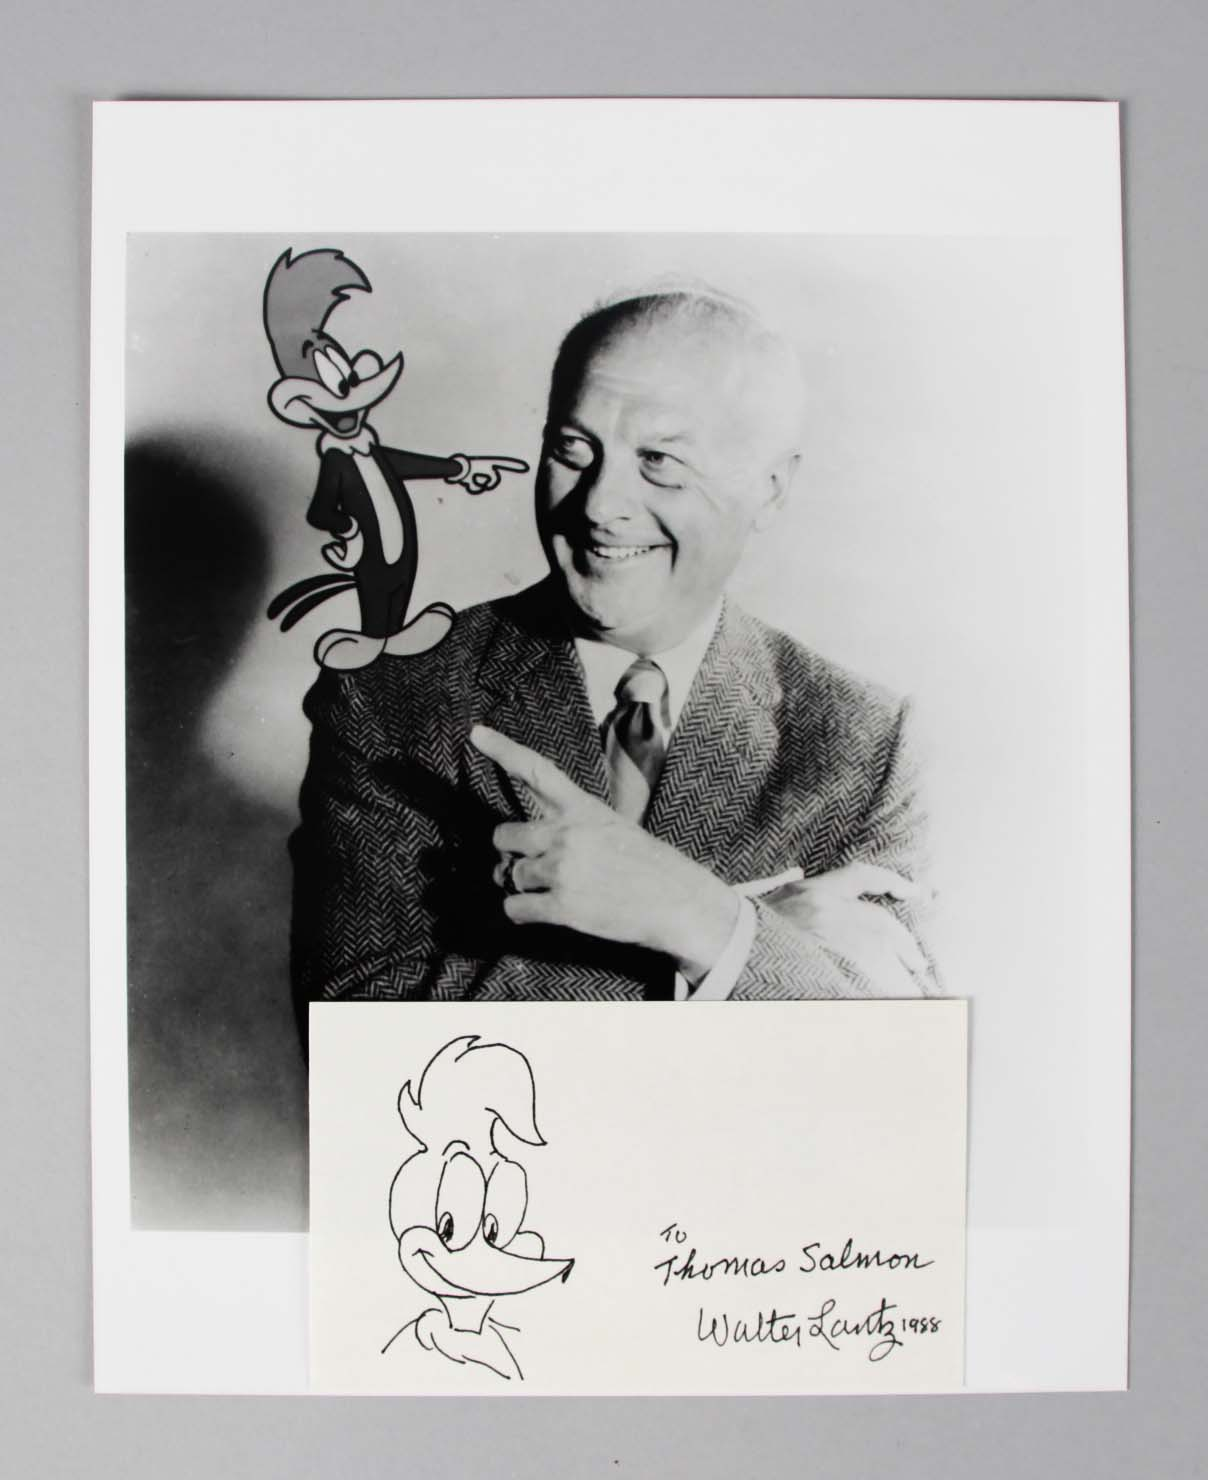 Walter Lantz Signed Index Card w/ Photo - COA JSA